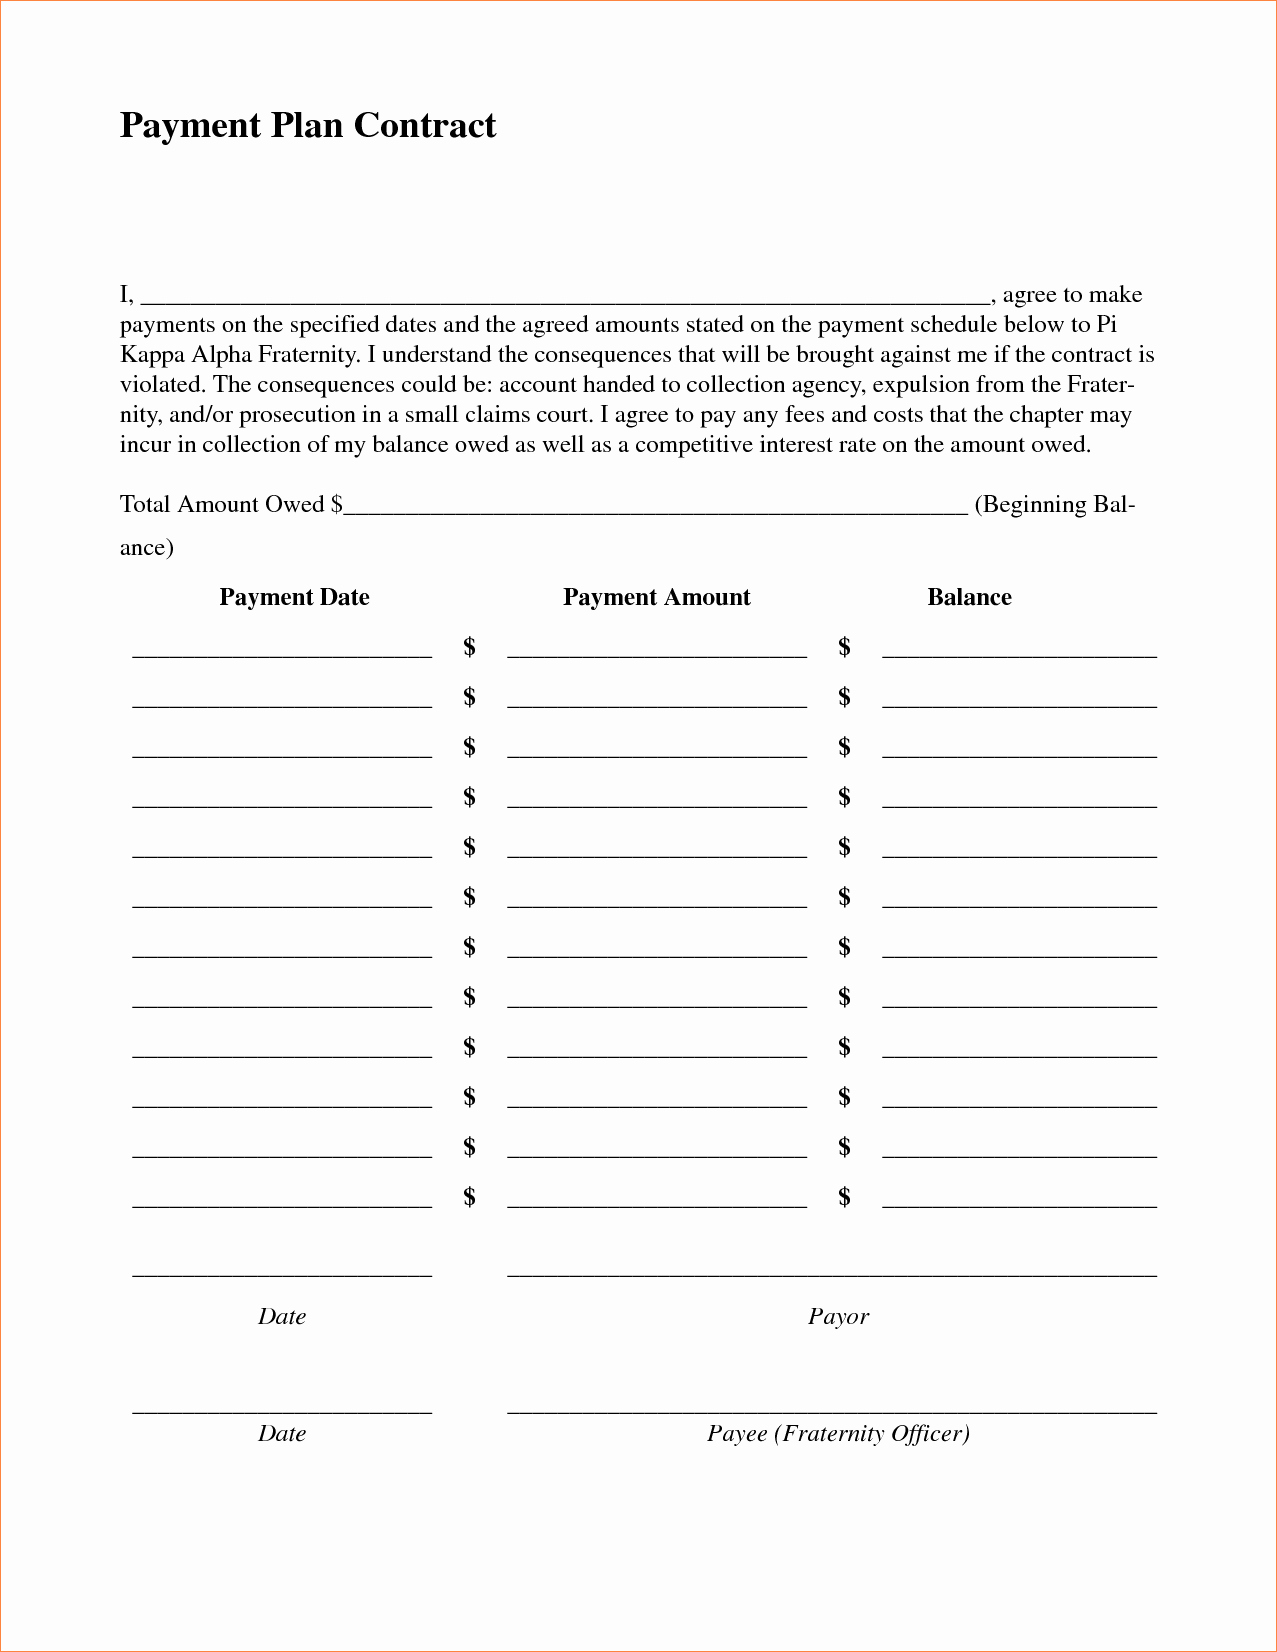 3 Payment Plan Contractreport Template Document